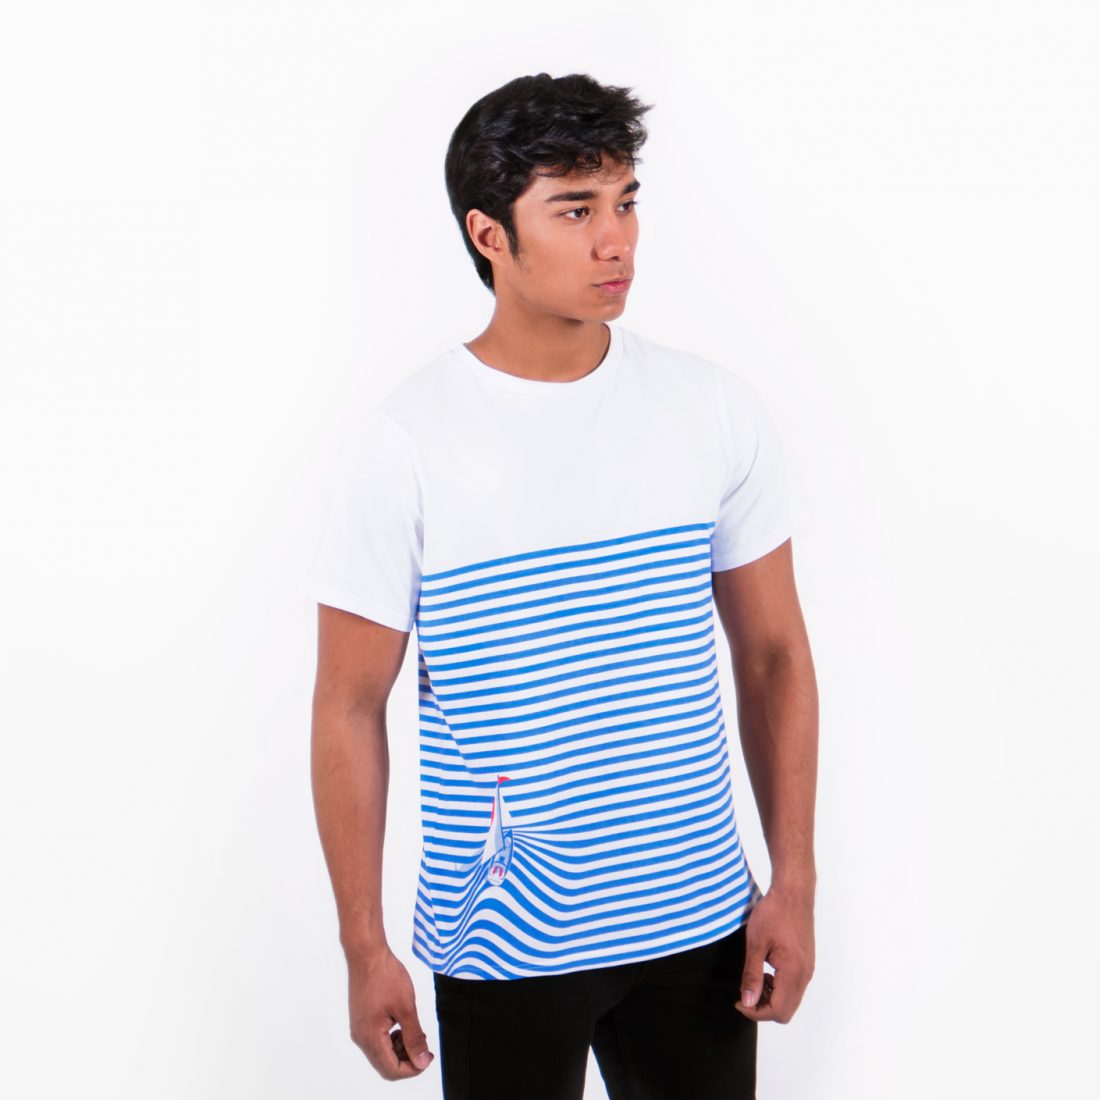 Sail Away T-shirt by La Come Di